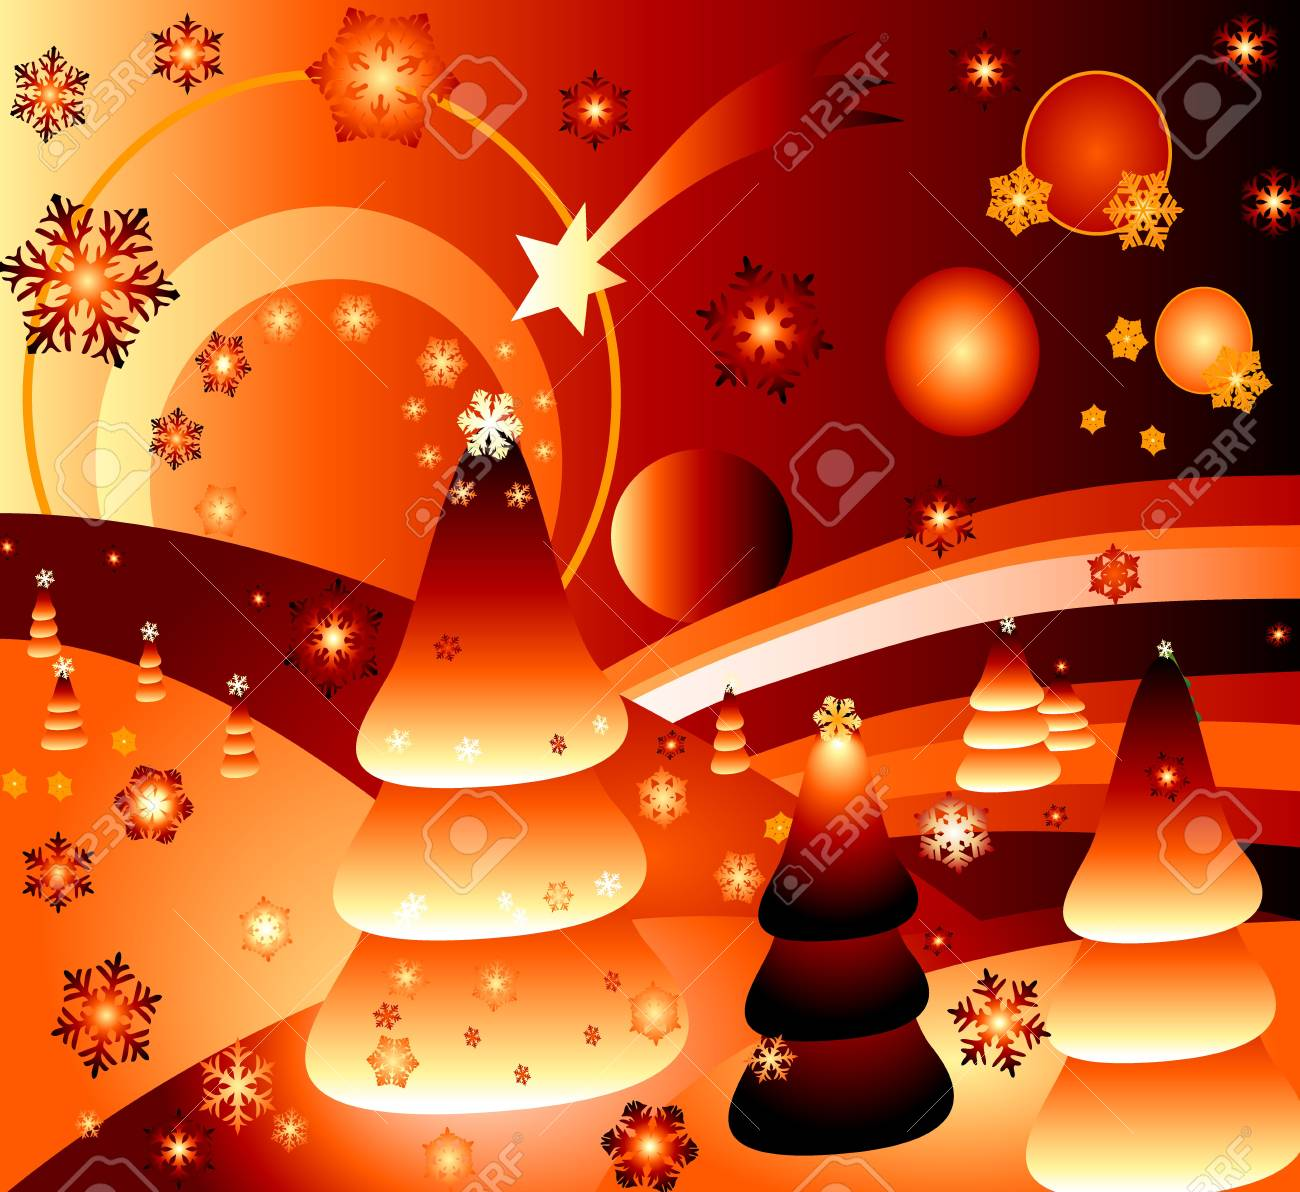 magic landscape with stars and comet Stock Photo - 593774